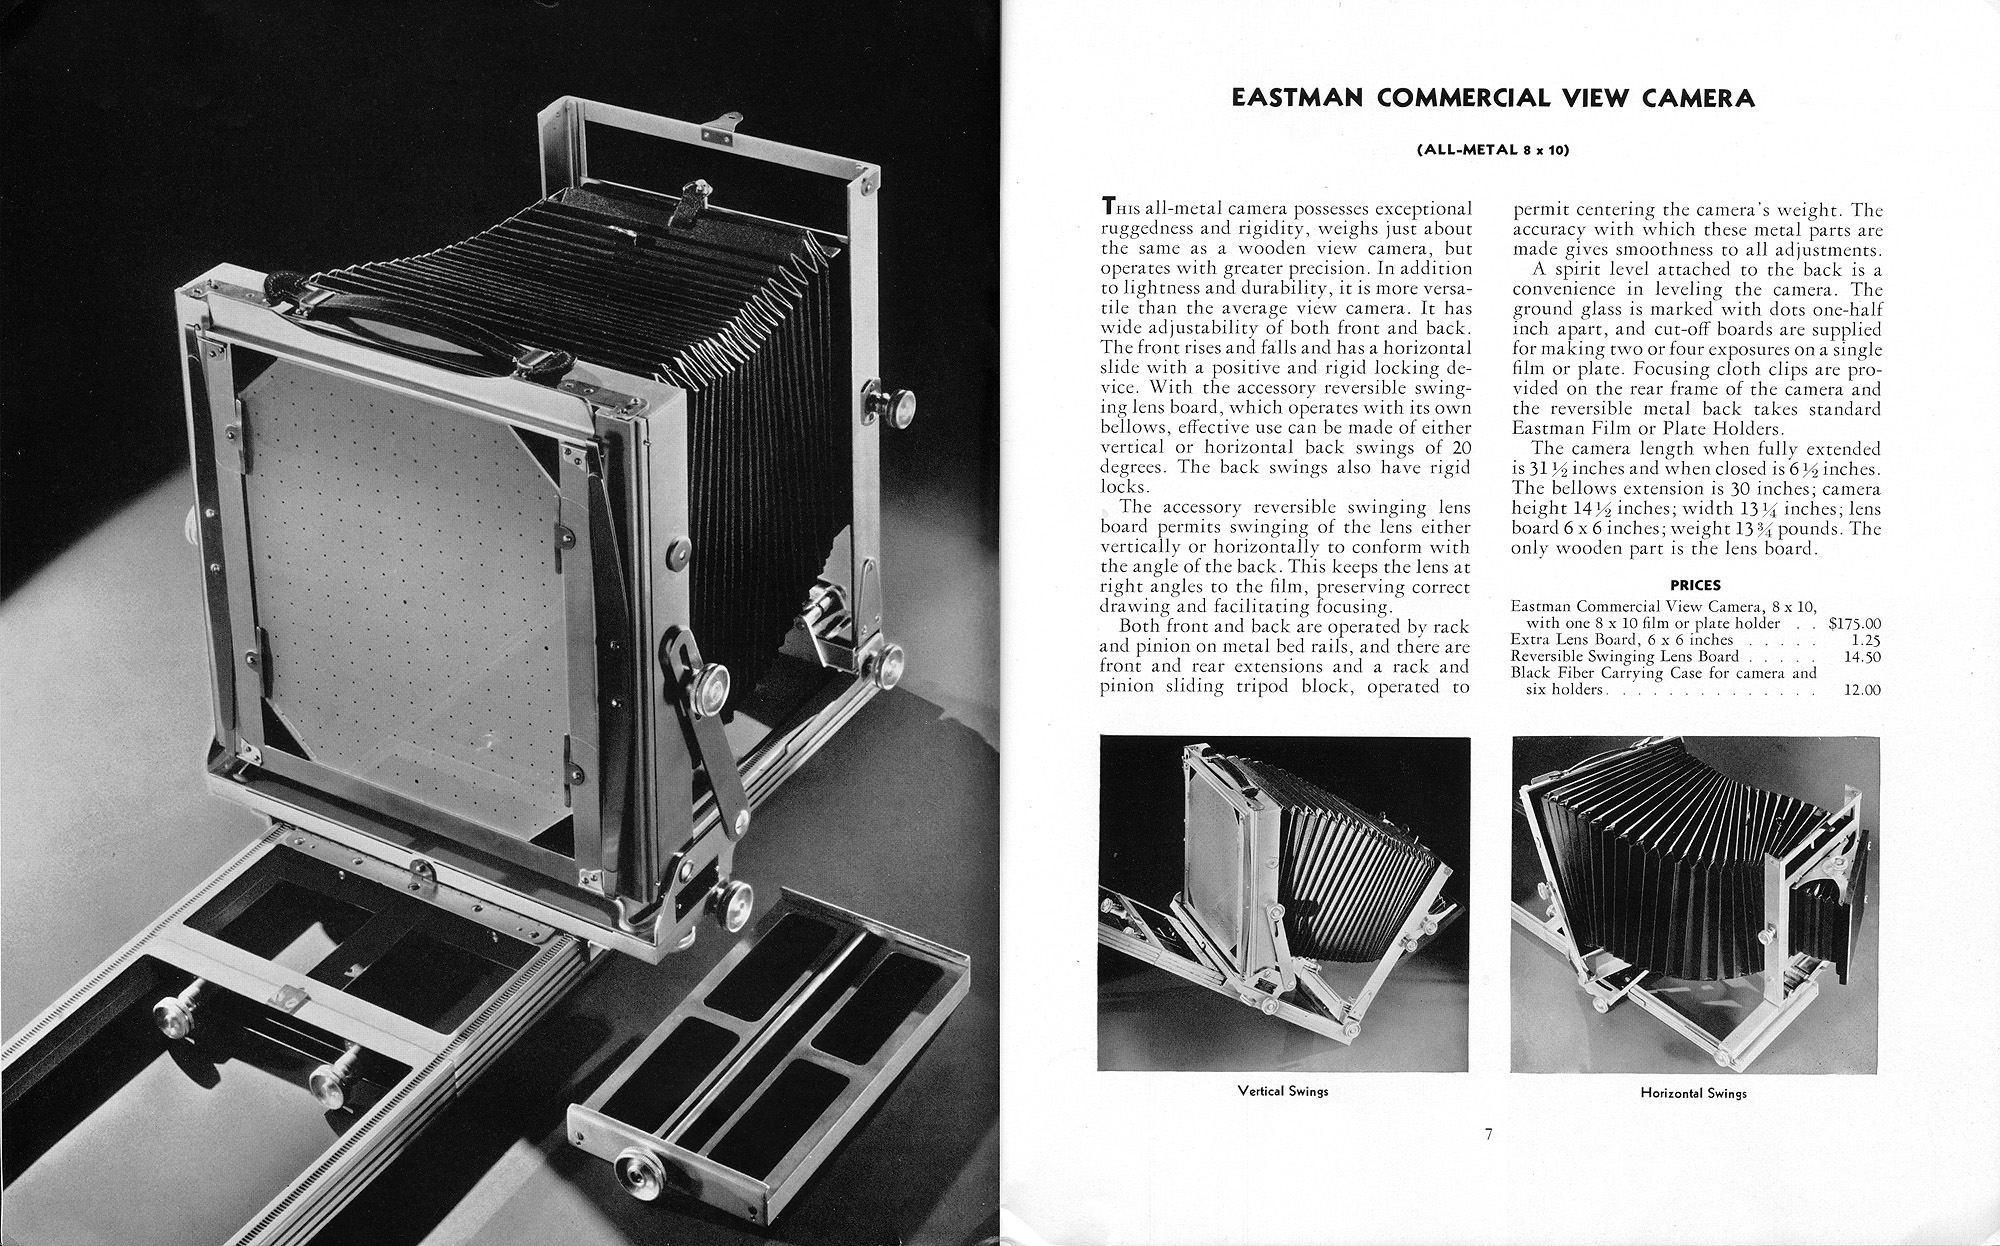 the rise and fall of eastman kodak View notes - the rise and fall of eastman kodak assgn 3 from bus 599 at strayer the rise and fall of eastman kodak: will it survive beyond 2012 in 2011, antonio perez, ceo of the eastman kodak co,.